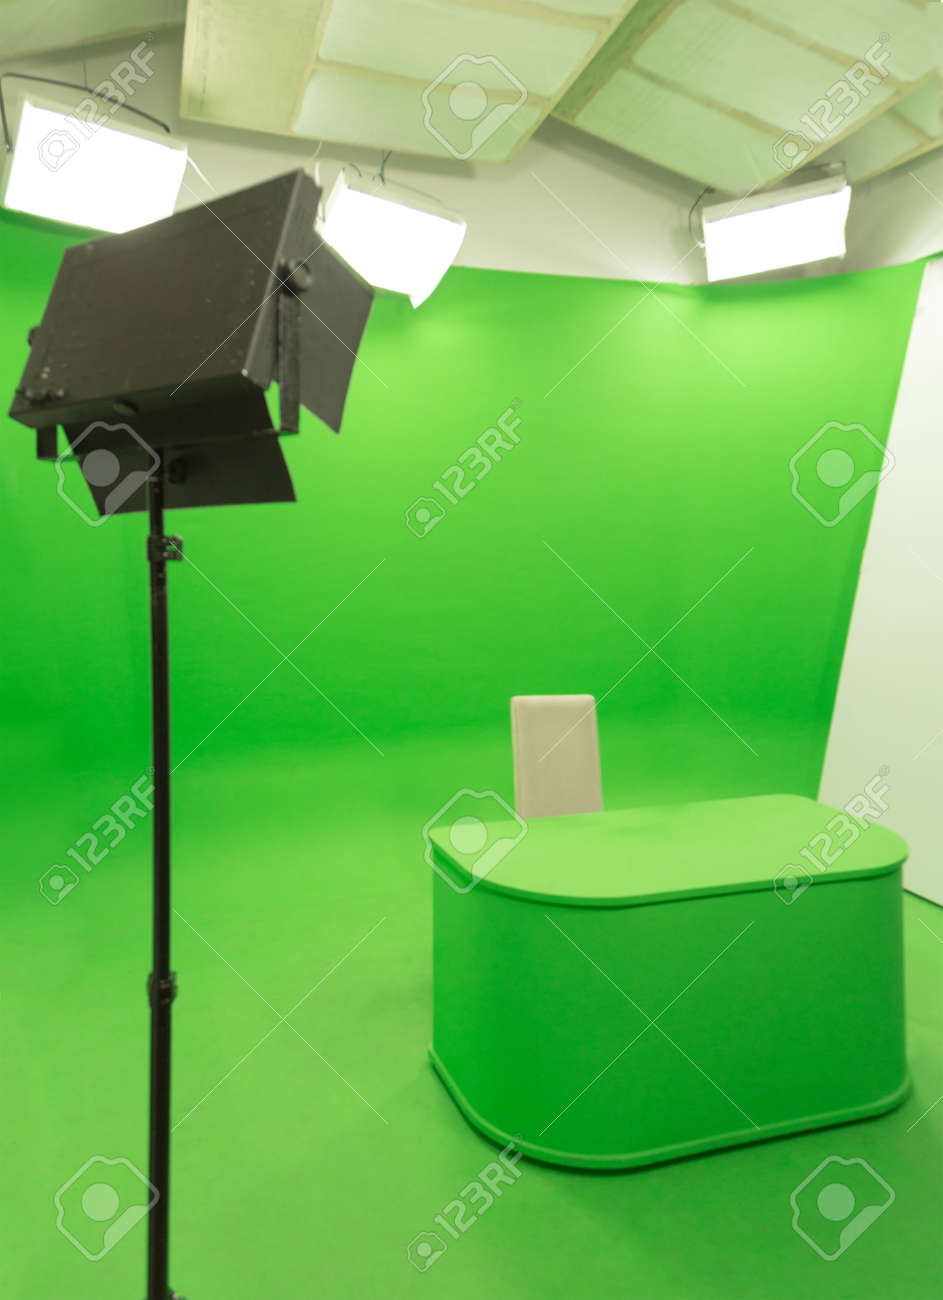 Modern Tv Studio Green Screen Chroma Key Background With Camera  # Television Moderne